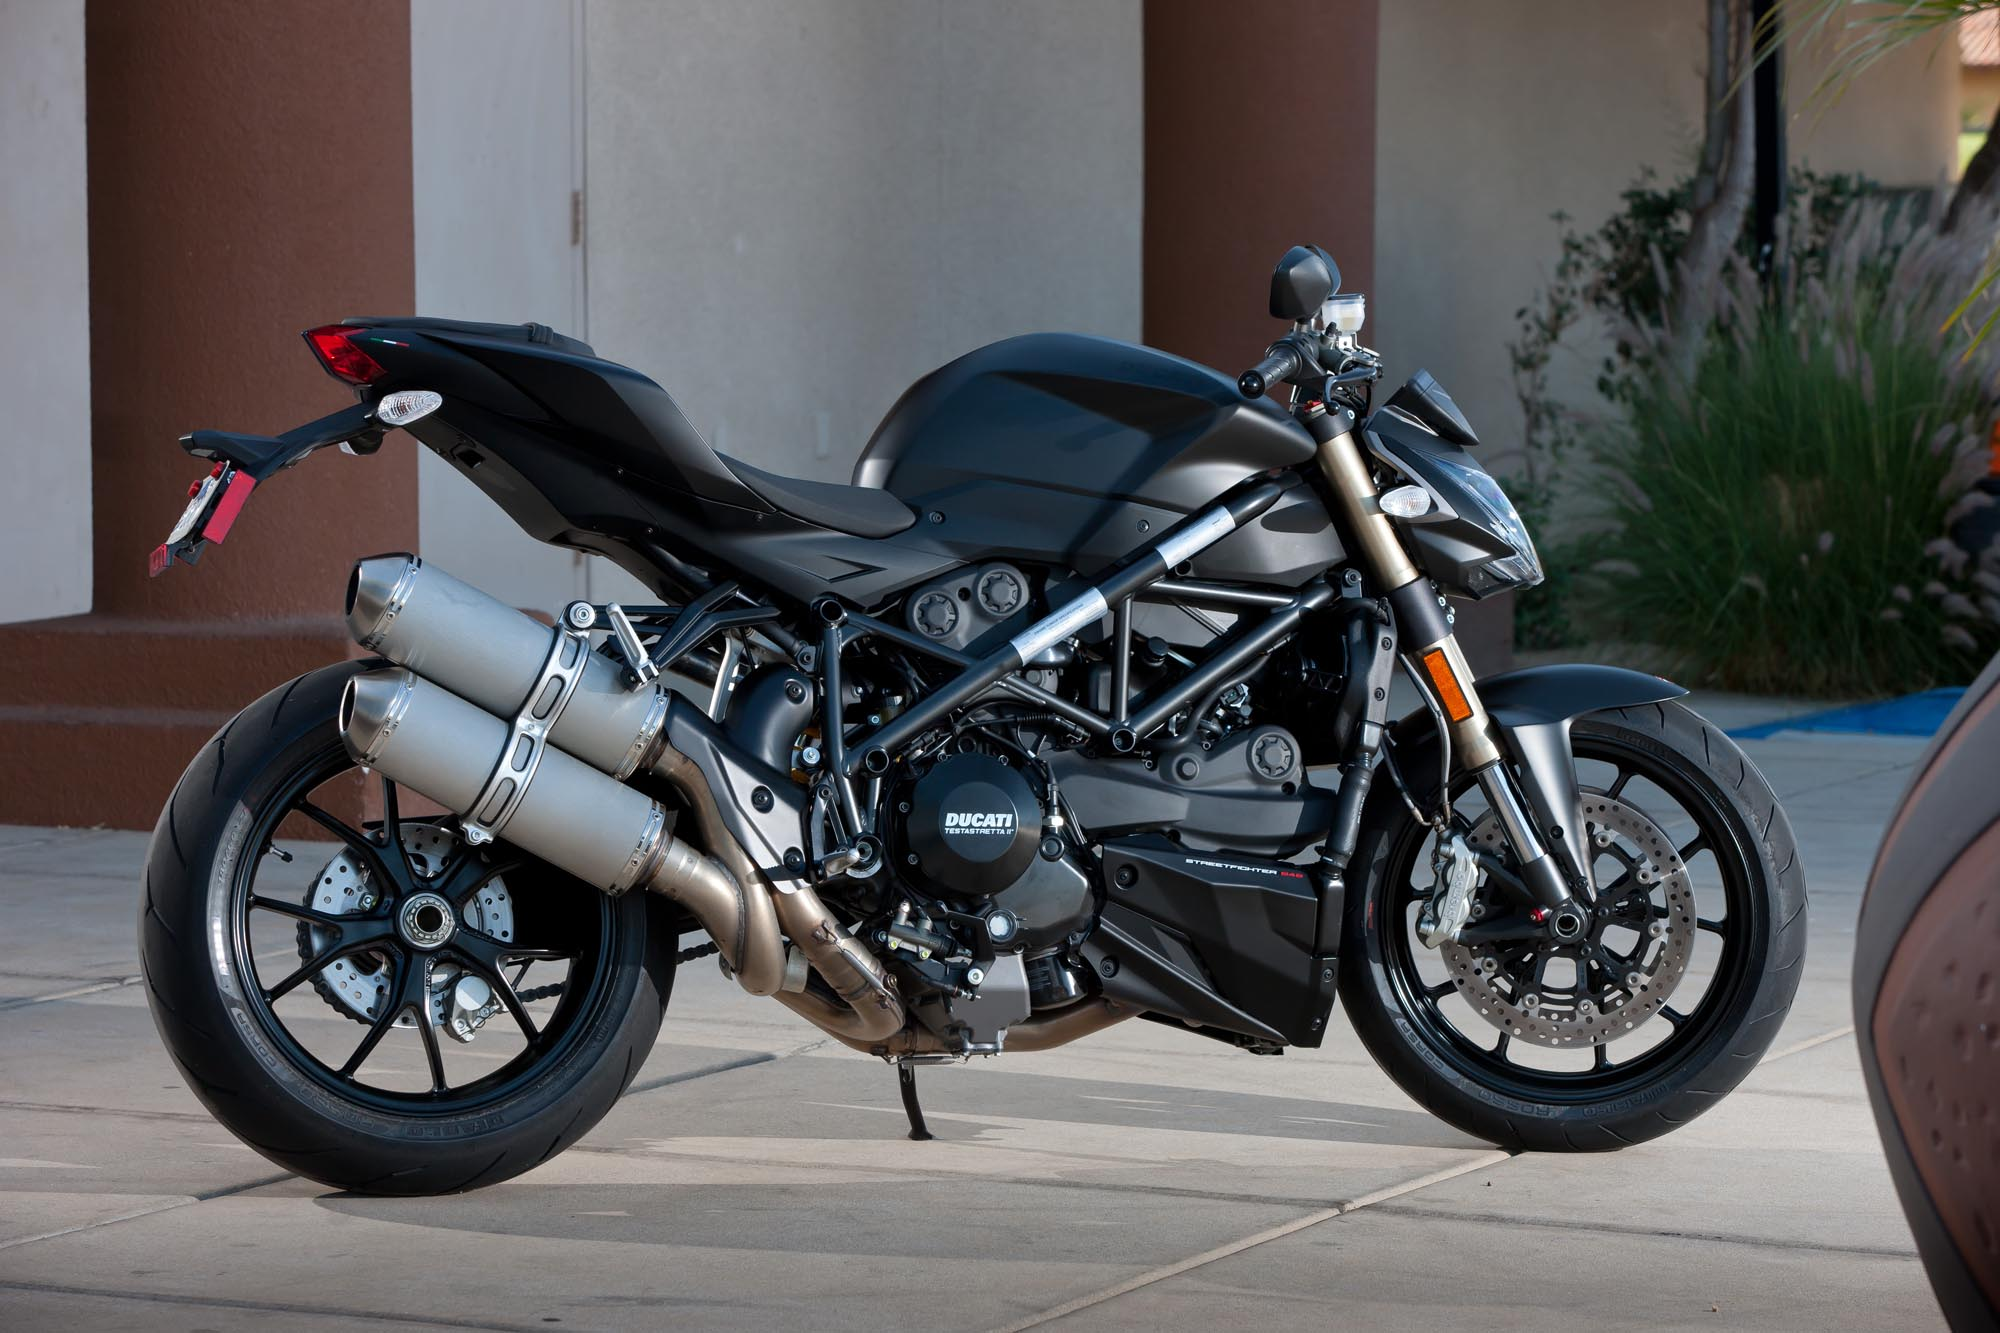 Ducati Streetfighter 848 2015 Wallpapers #13419 .